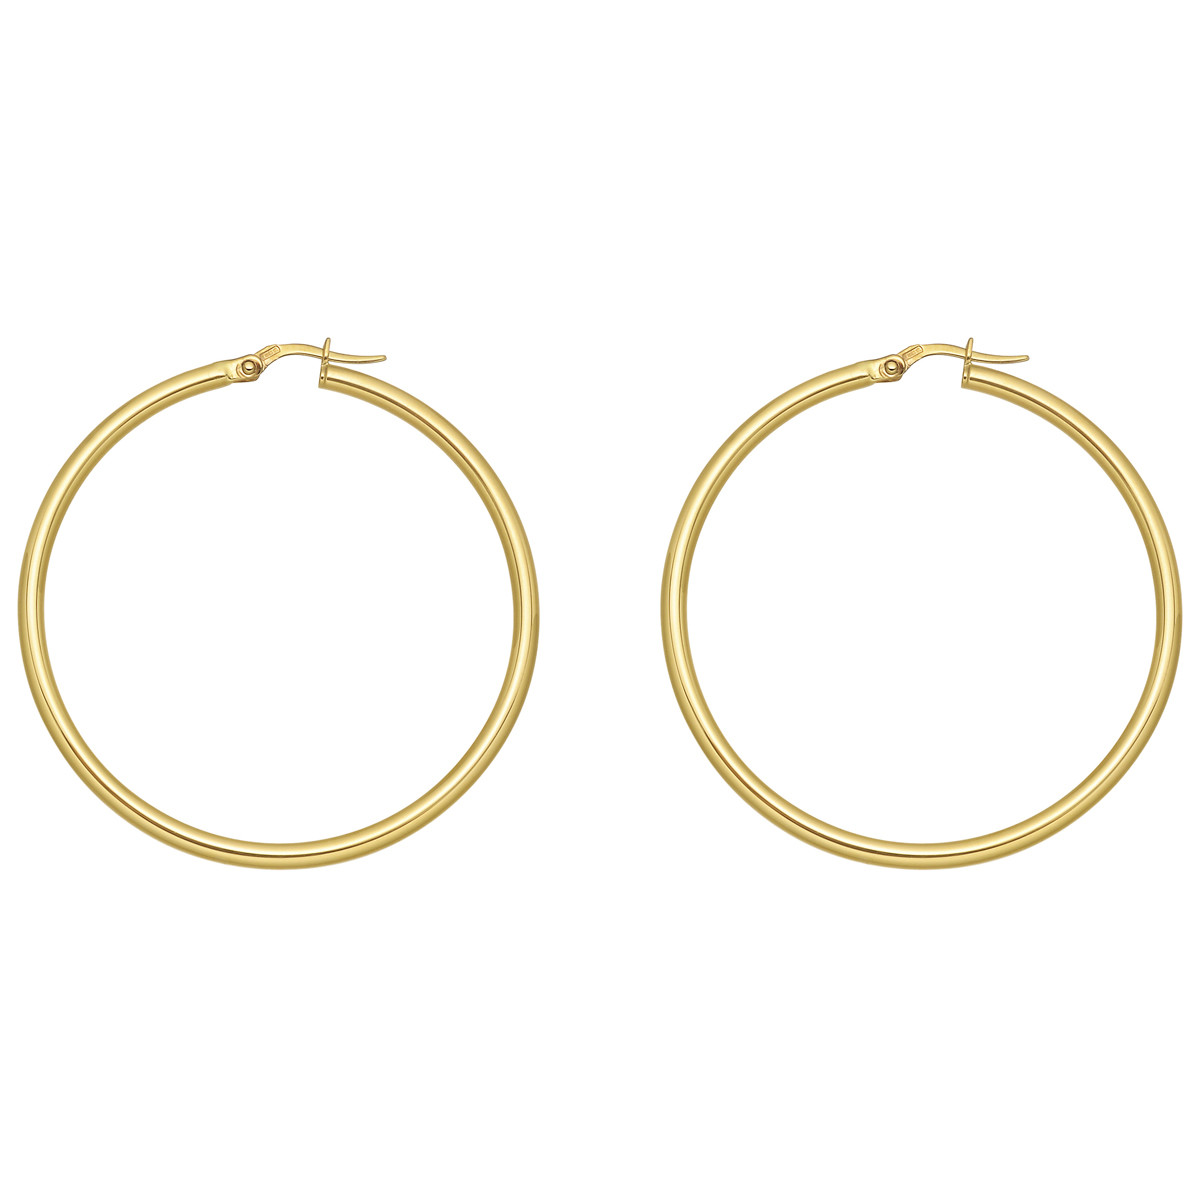 Large 18k Yellow Gold Round Hoop Earrings